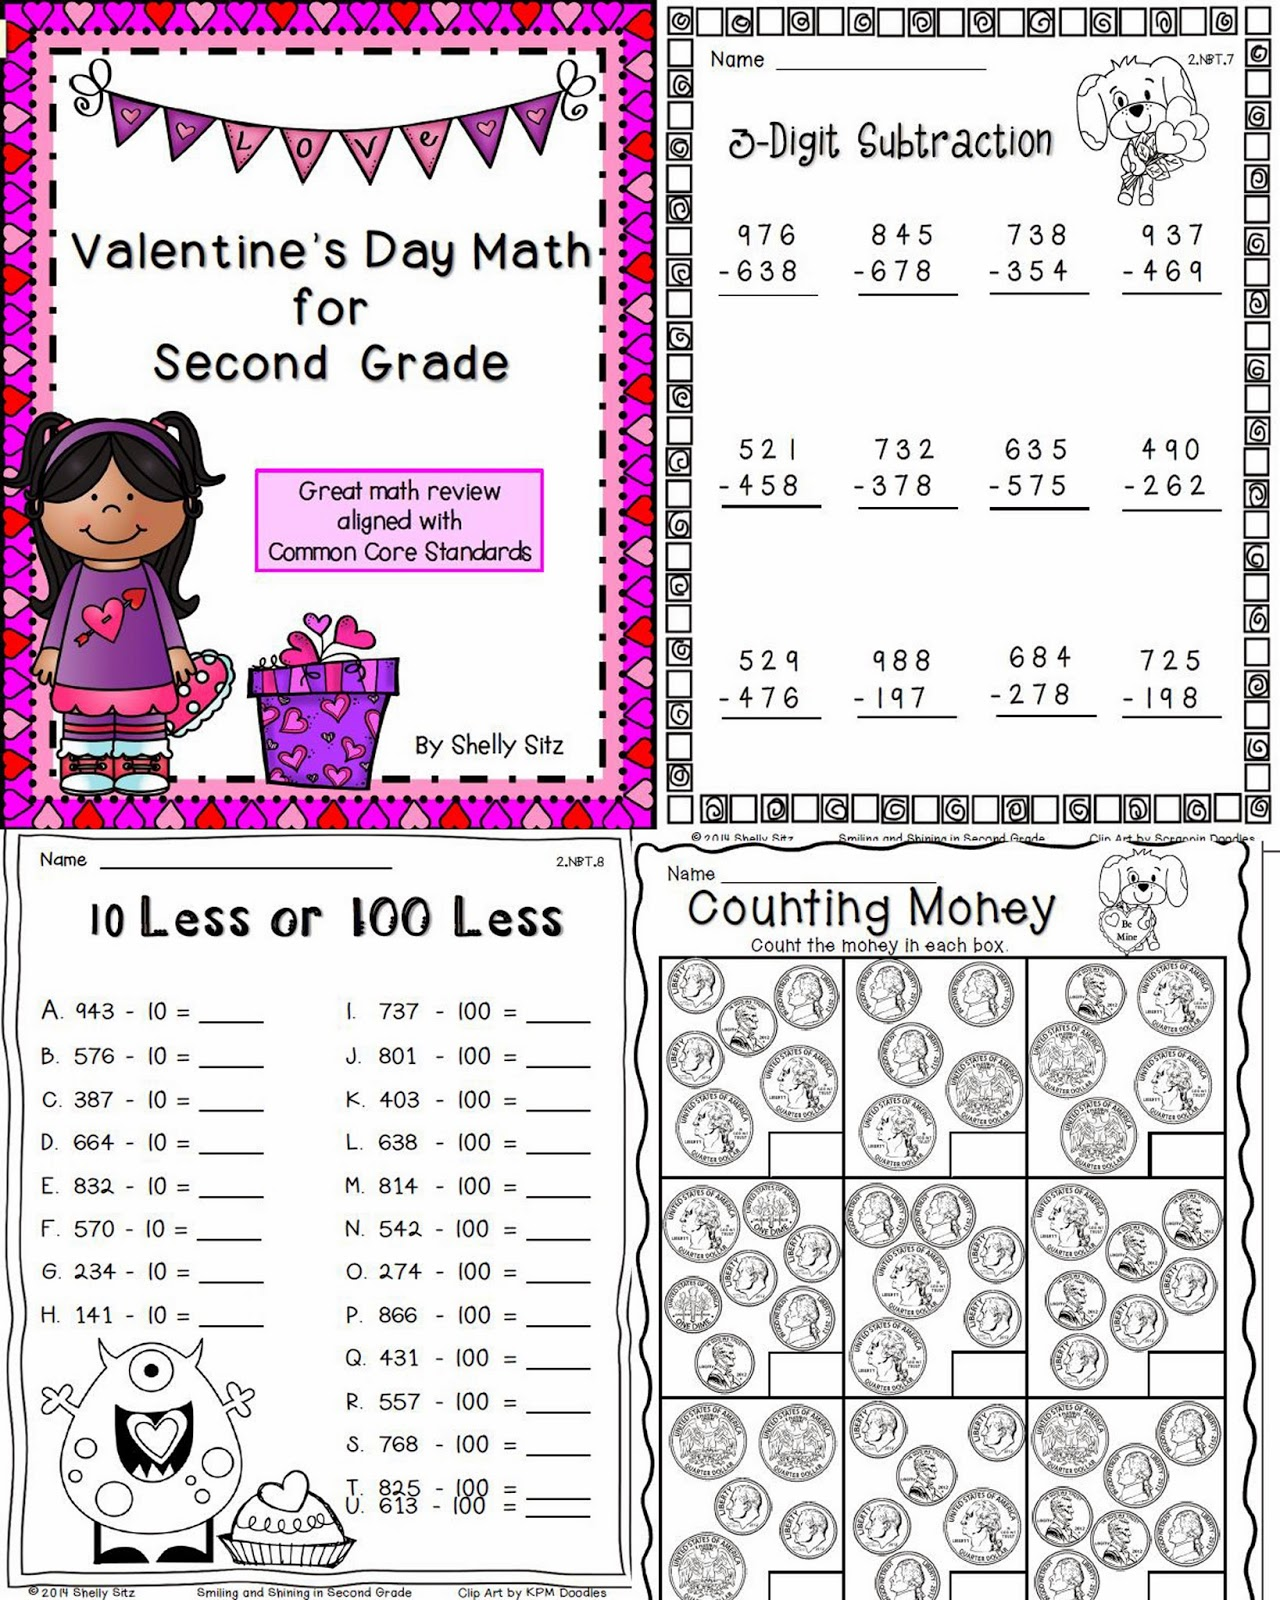 http://www.teacherspayteachers.com/Product/Valentines-Day-Math-for-Second-Grade-1096229